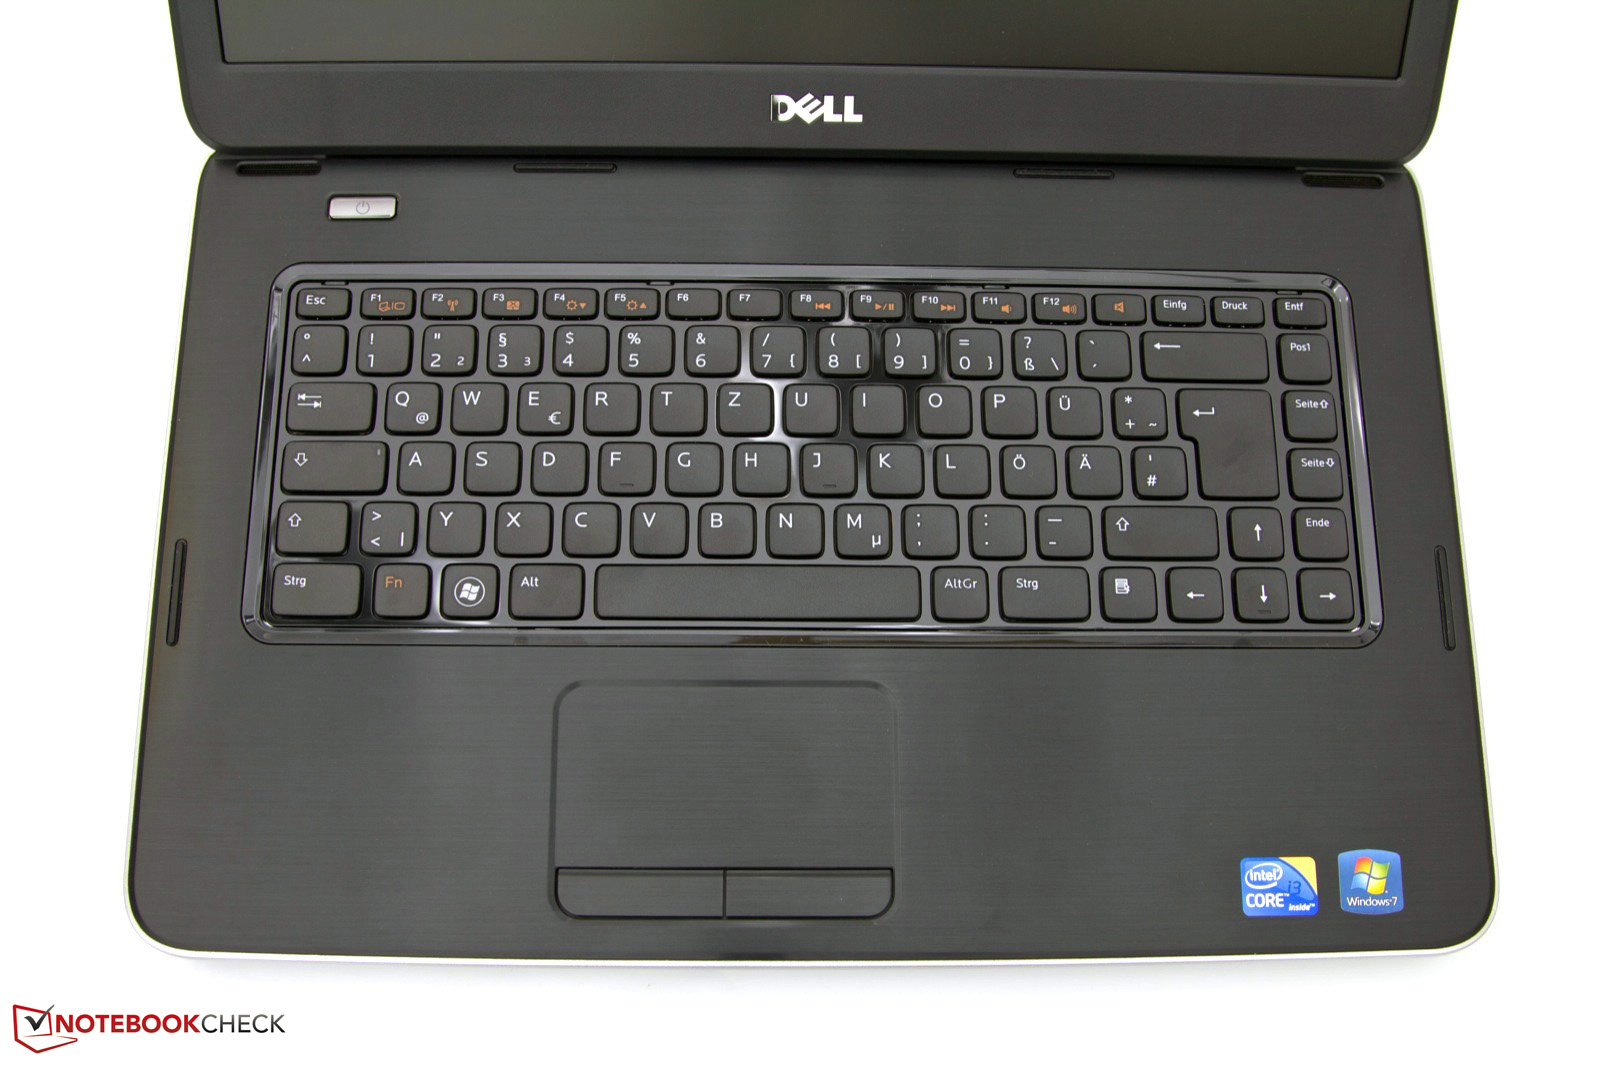 Dell Vostro 3555 Notebook 1701 WLAN New